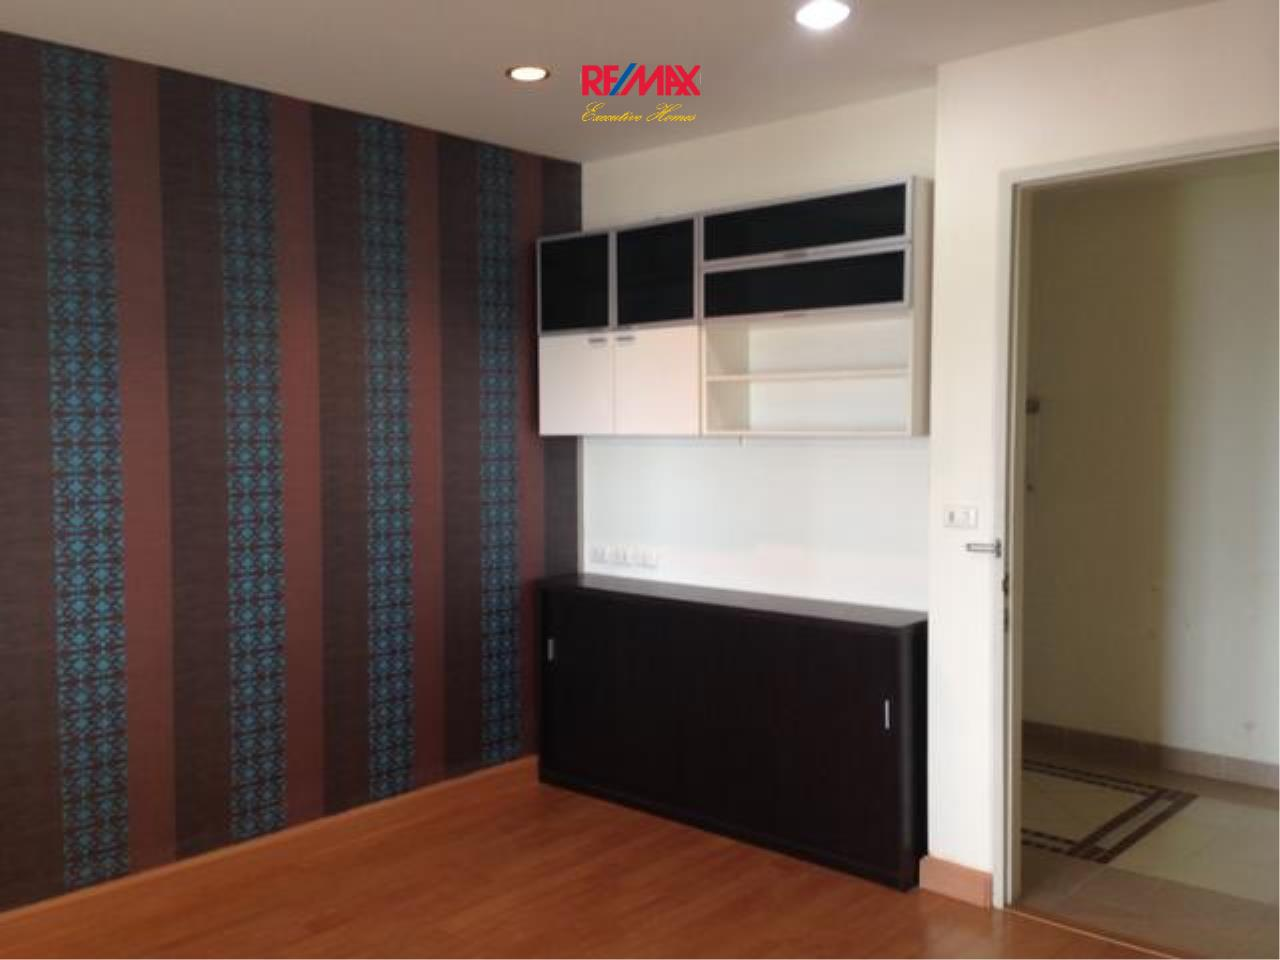 RE/MAX Executive Homes Agency's Nice 1 Bedroom for Sale Life @ Ratchada 5